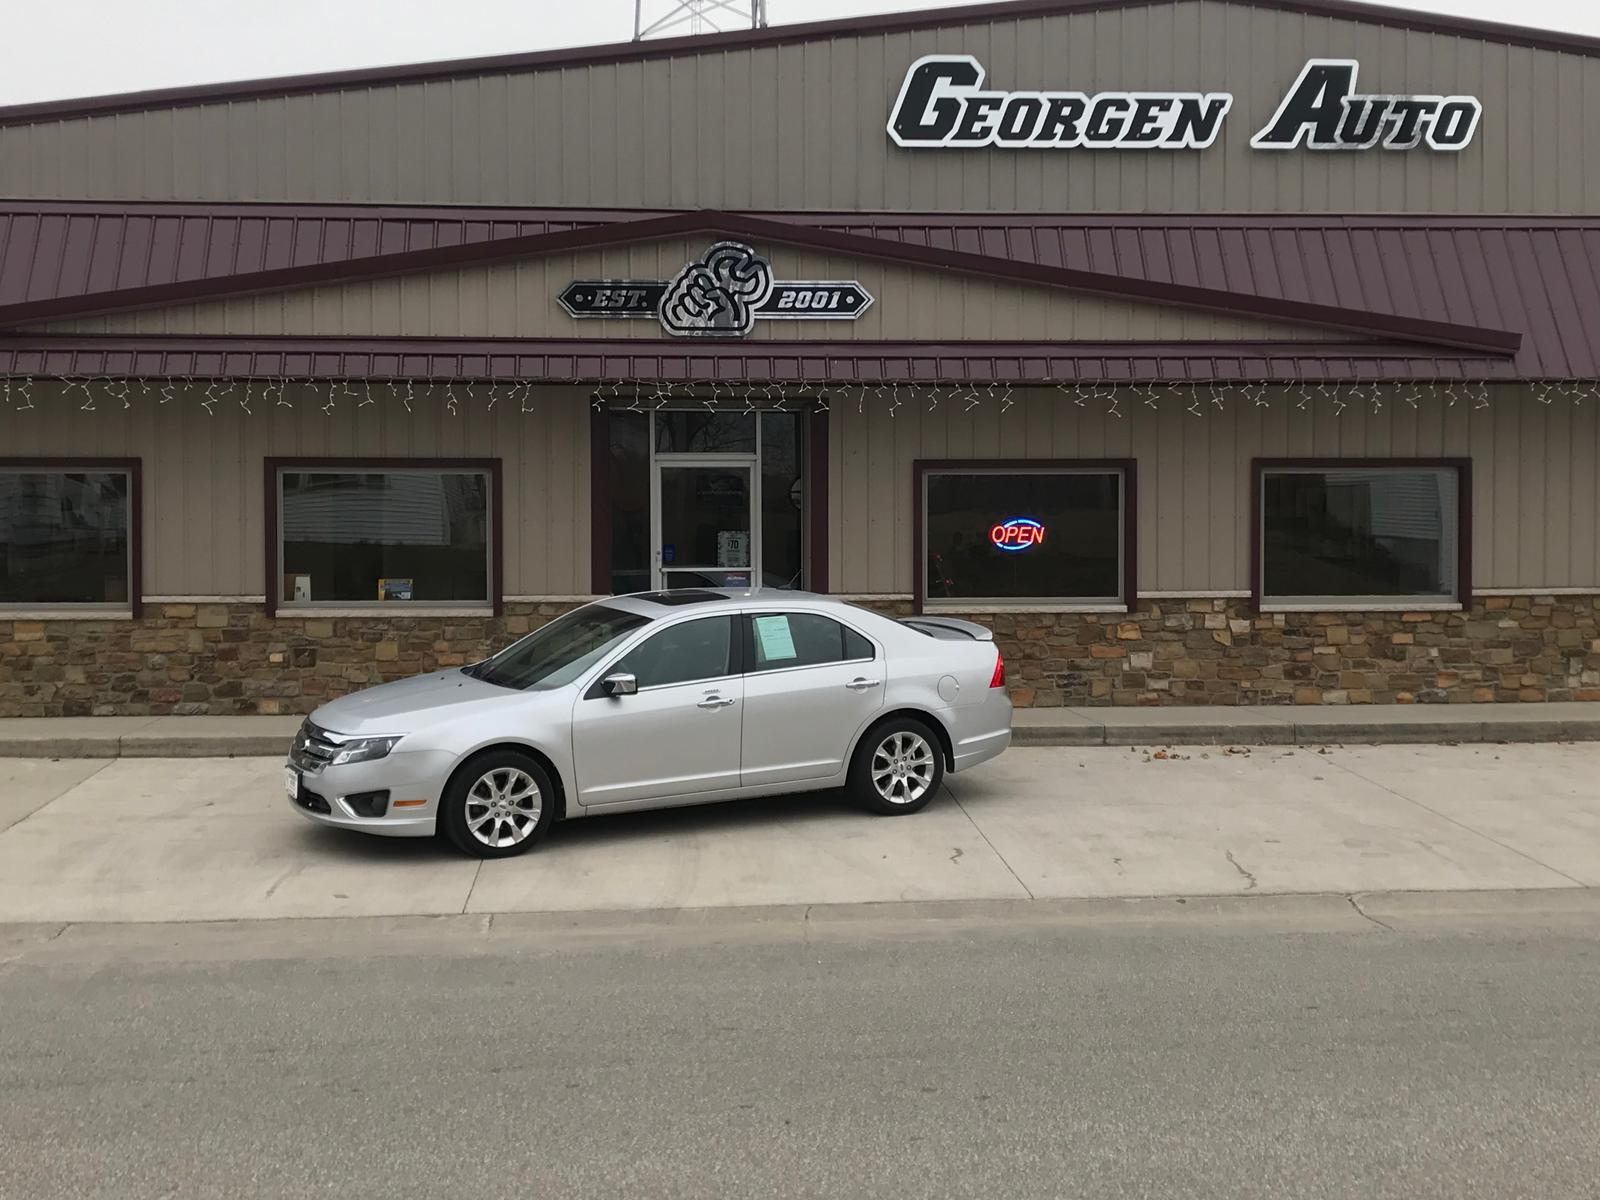 2012 Ford Fusion Sel For Sale In Manchester Ia Georgen